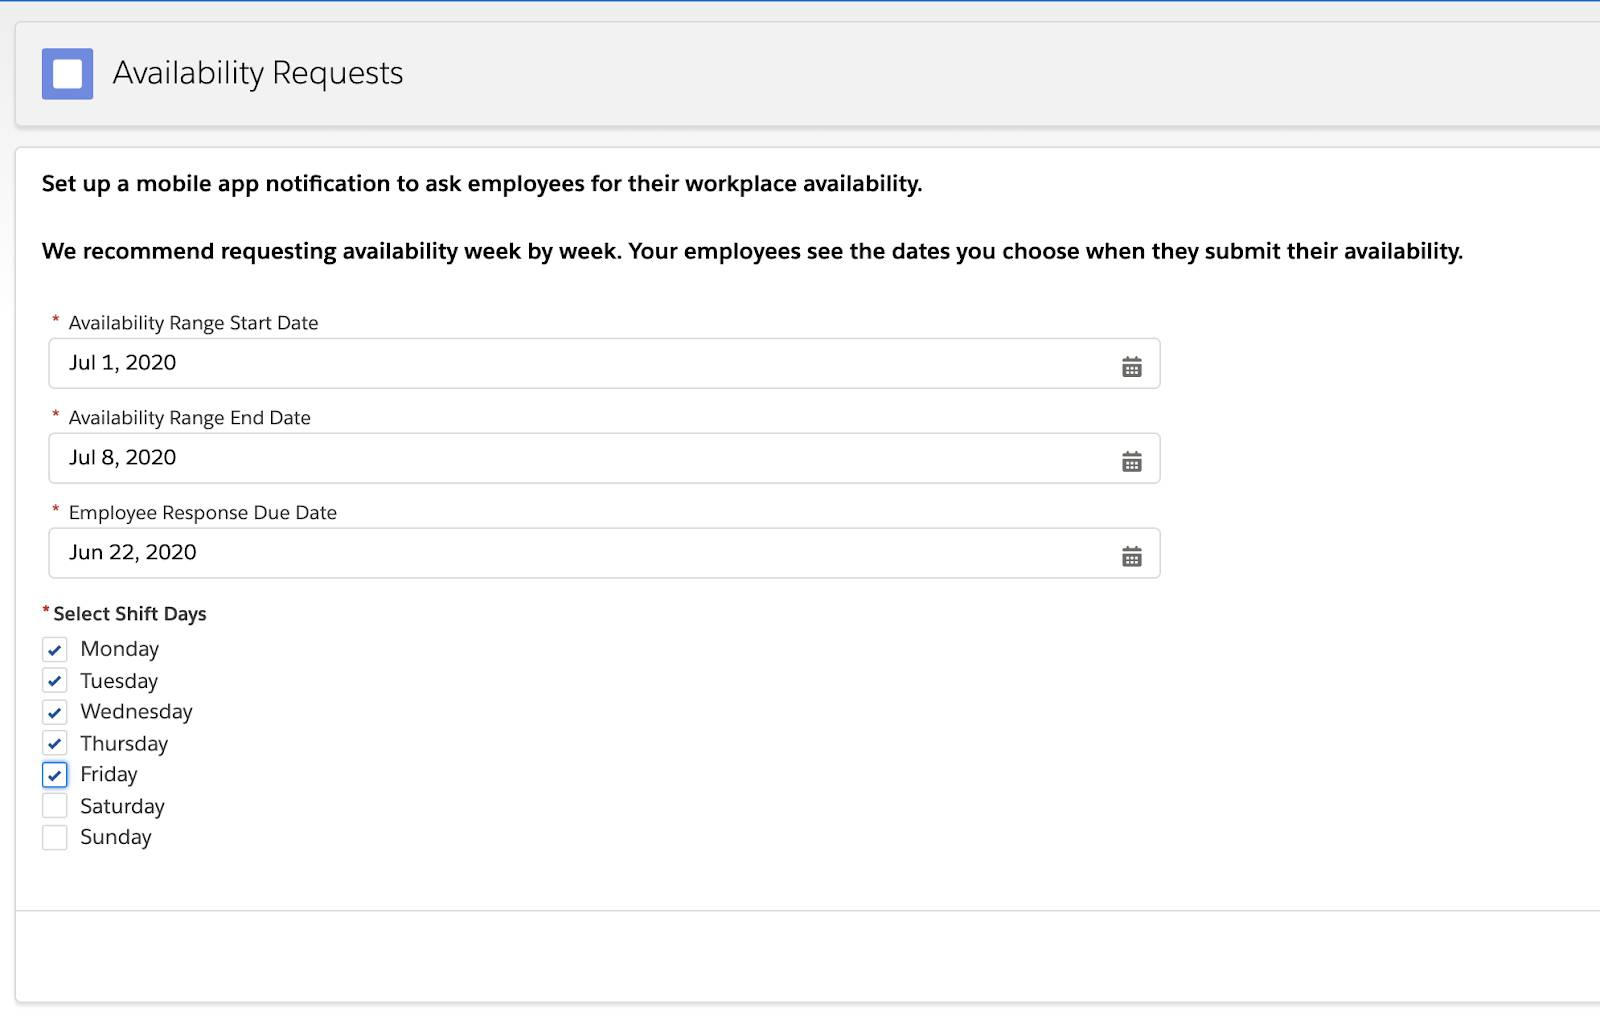 Availability Requests window that a scheduler would use to send a mobile notification to employees